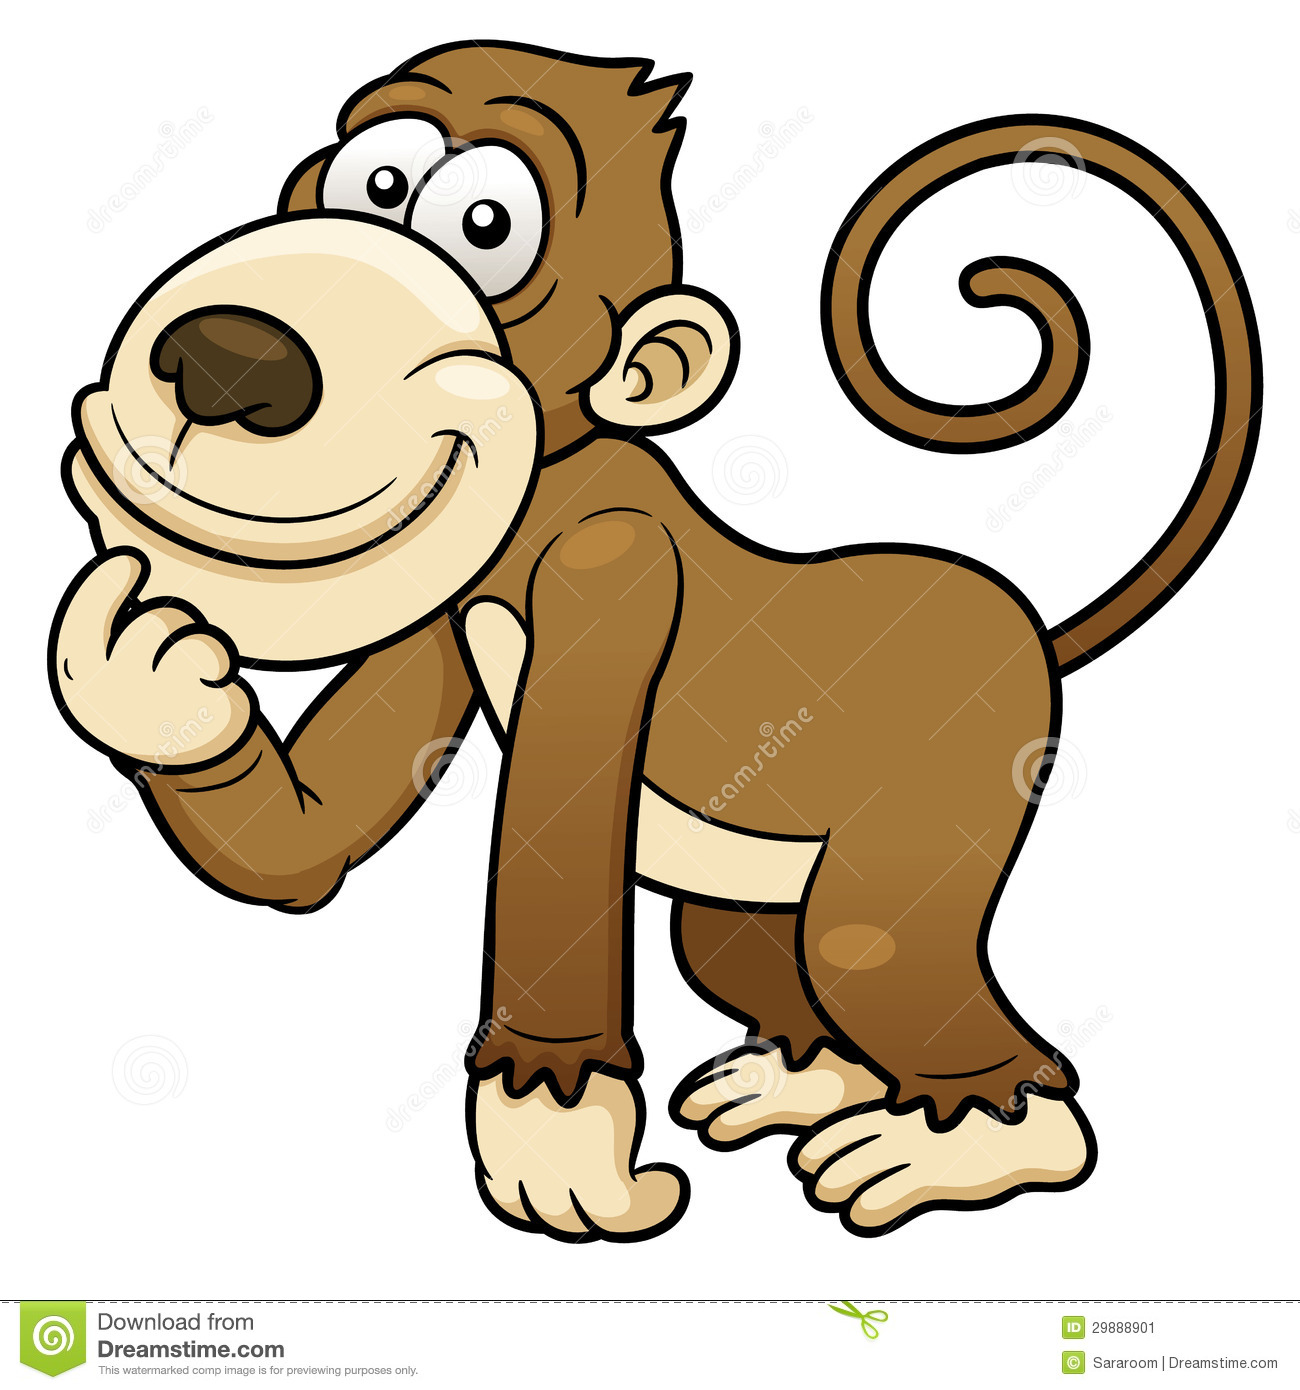 Cartoon Monkey Stock Image - Image: 29888901